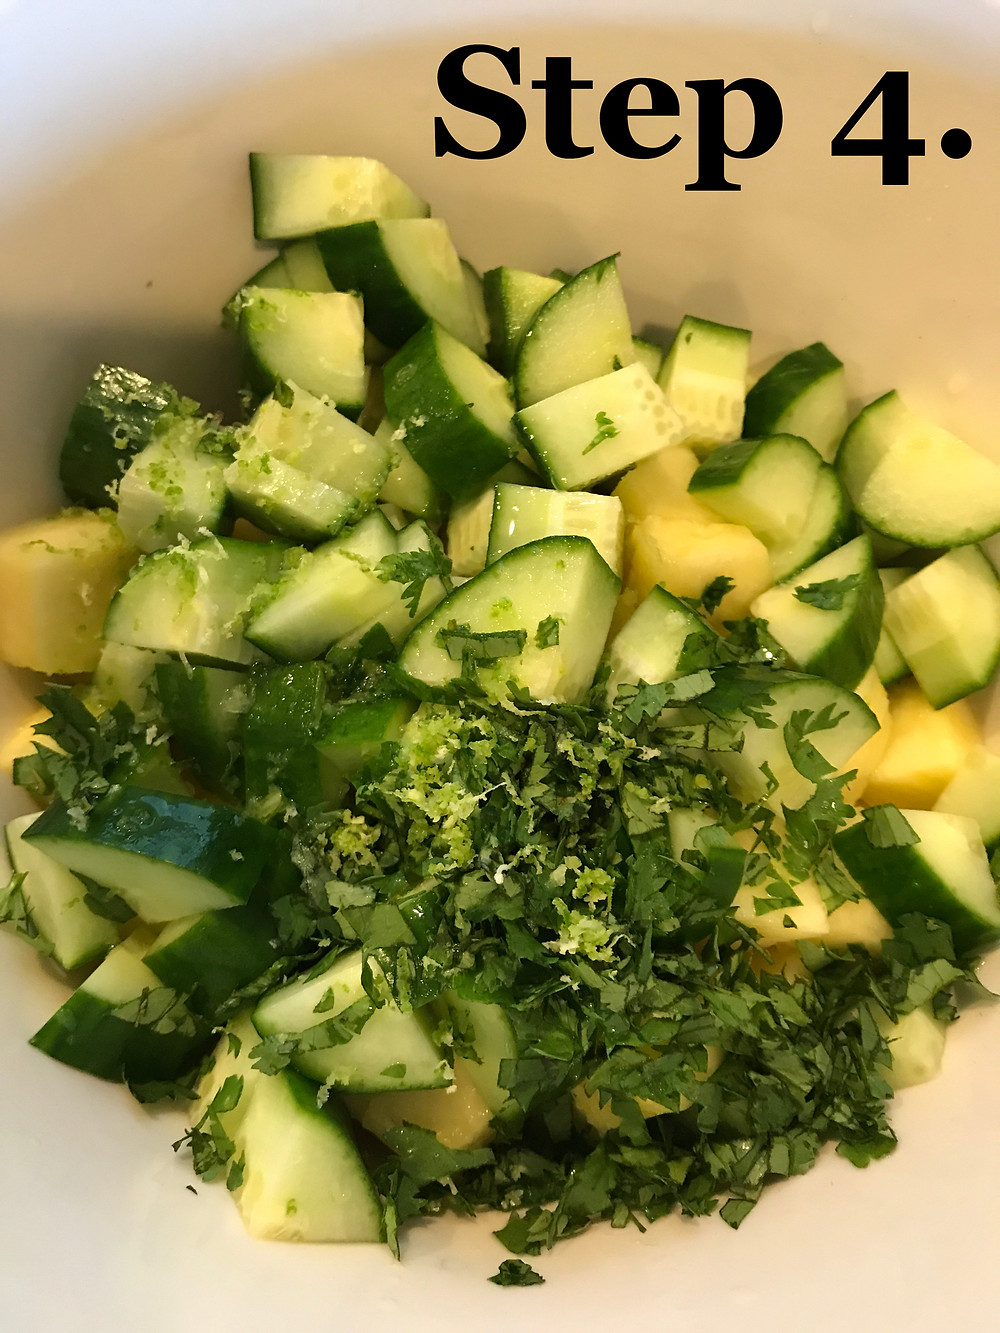 Add zest of lime and juice to cucumber and pineapple